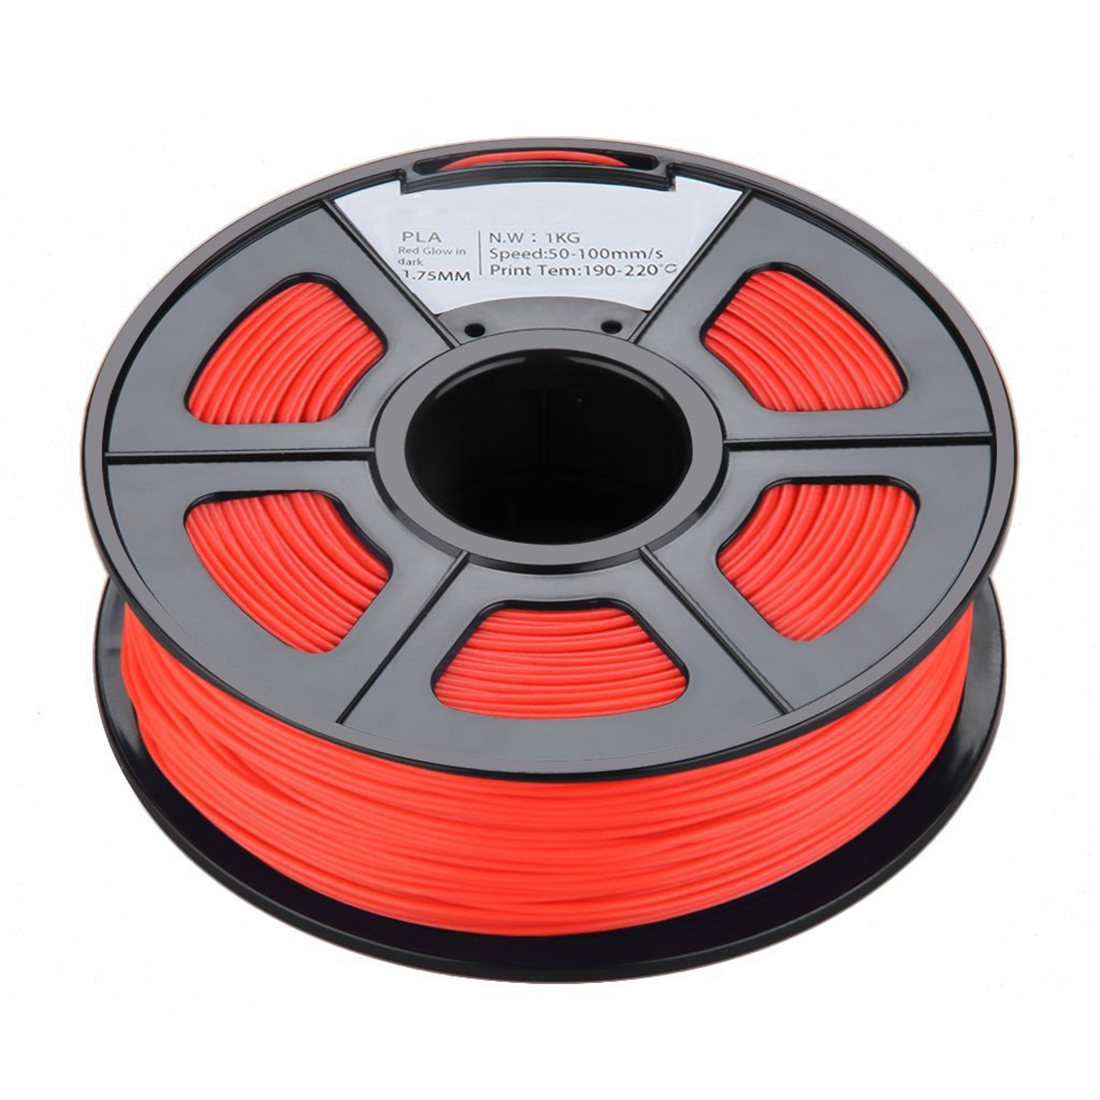 New 1.75mm Glow in the Dark PLA 3D Printer Filament - 1kg Spool (2.2 lbs) - Dimensional Accuracy +/- 0.02mm (Red) 3d printer filament pla 1 75mm 1kg plastic rubber consumables material 10 kinds colours for you choose